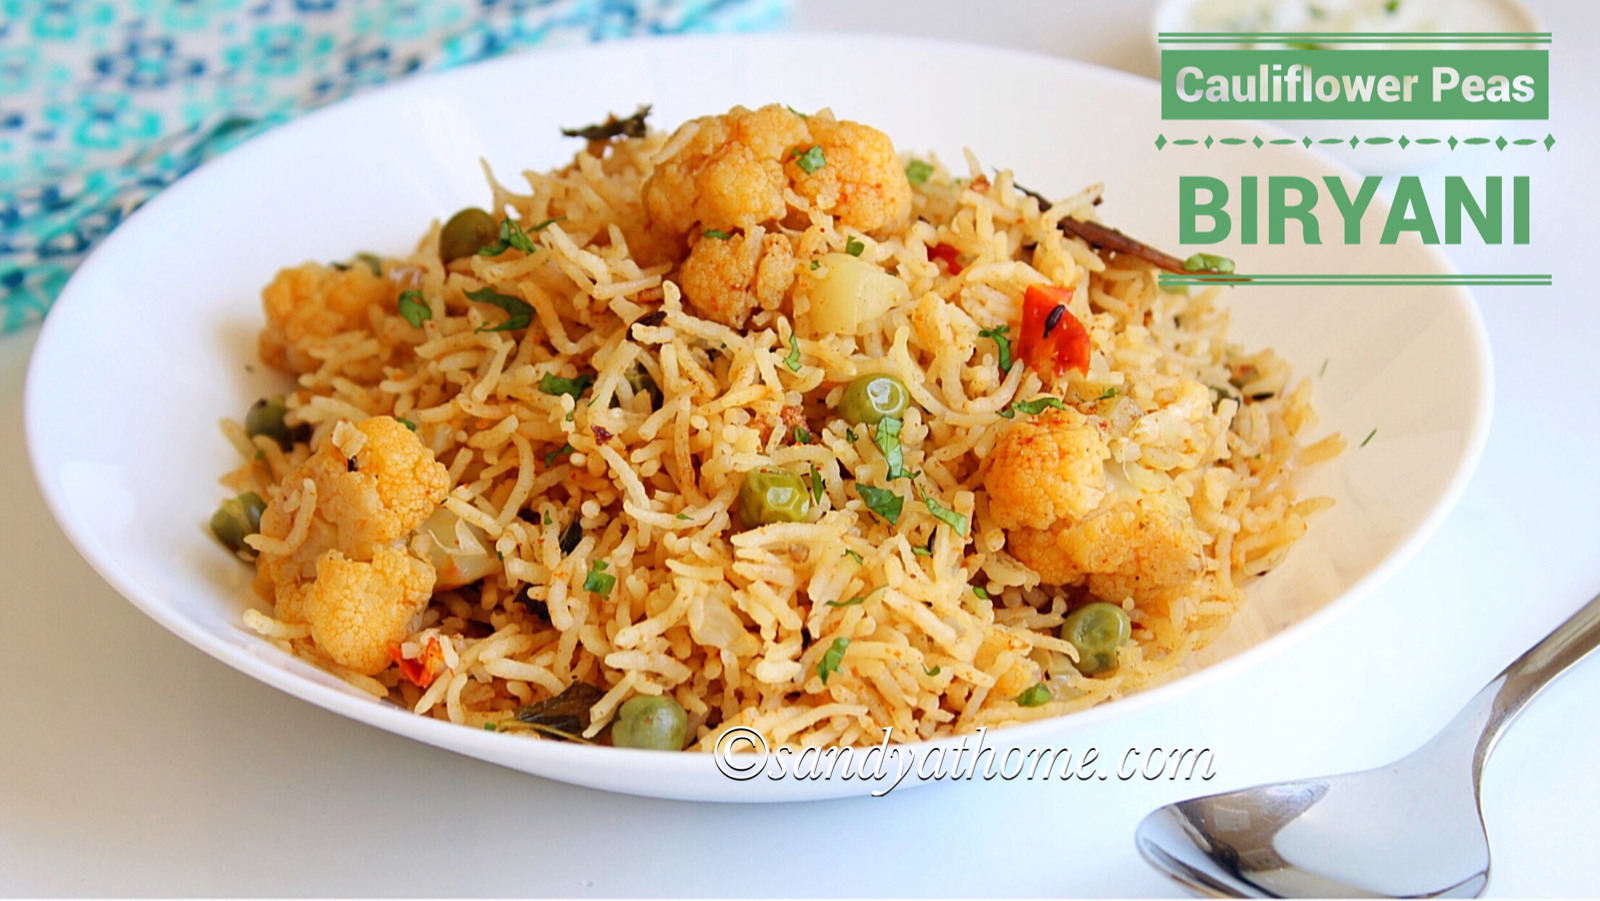 cauliflower peas biryani recipe, cauliflower biryani recipe